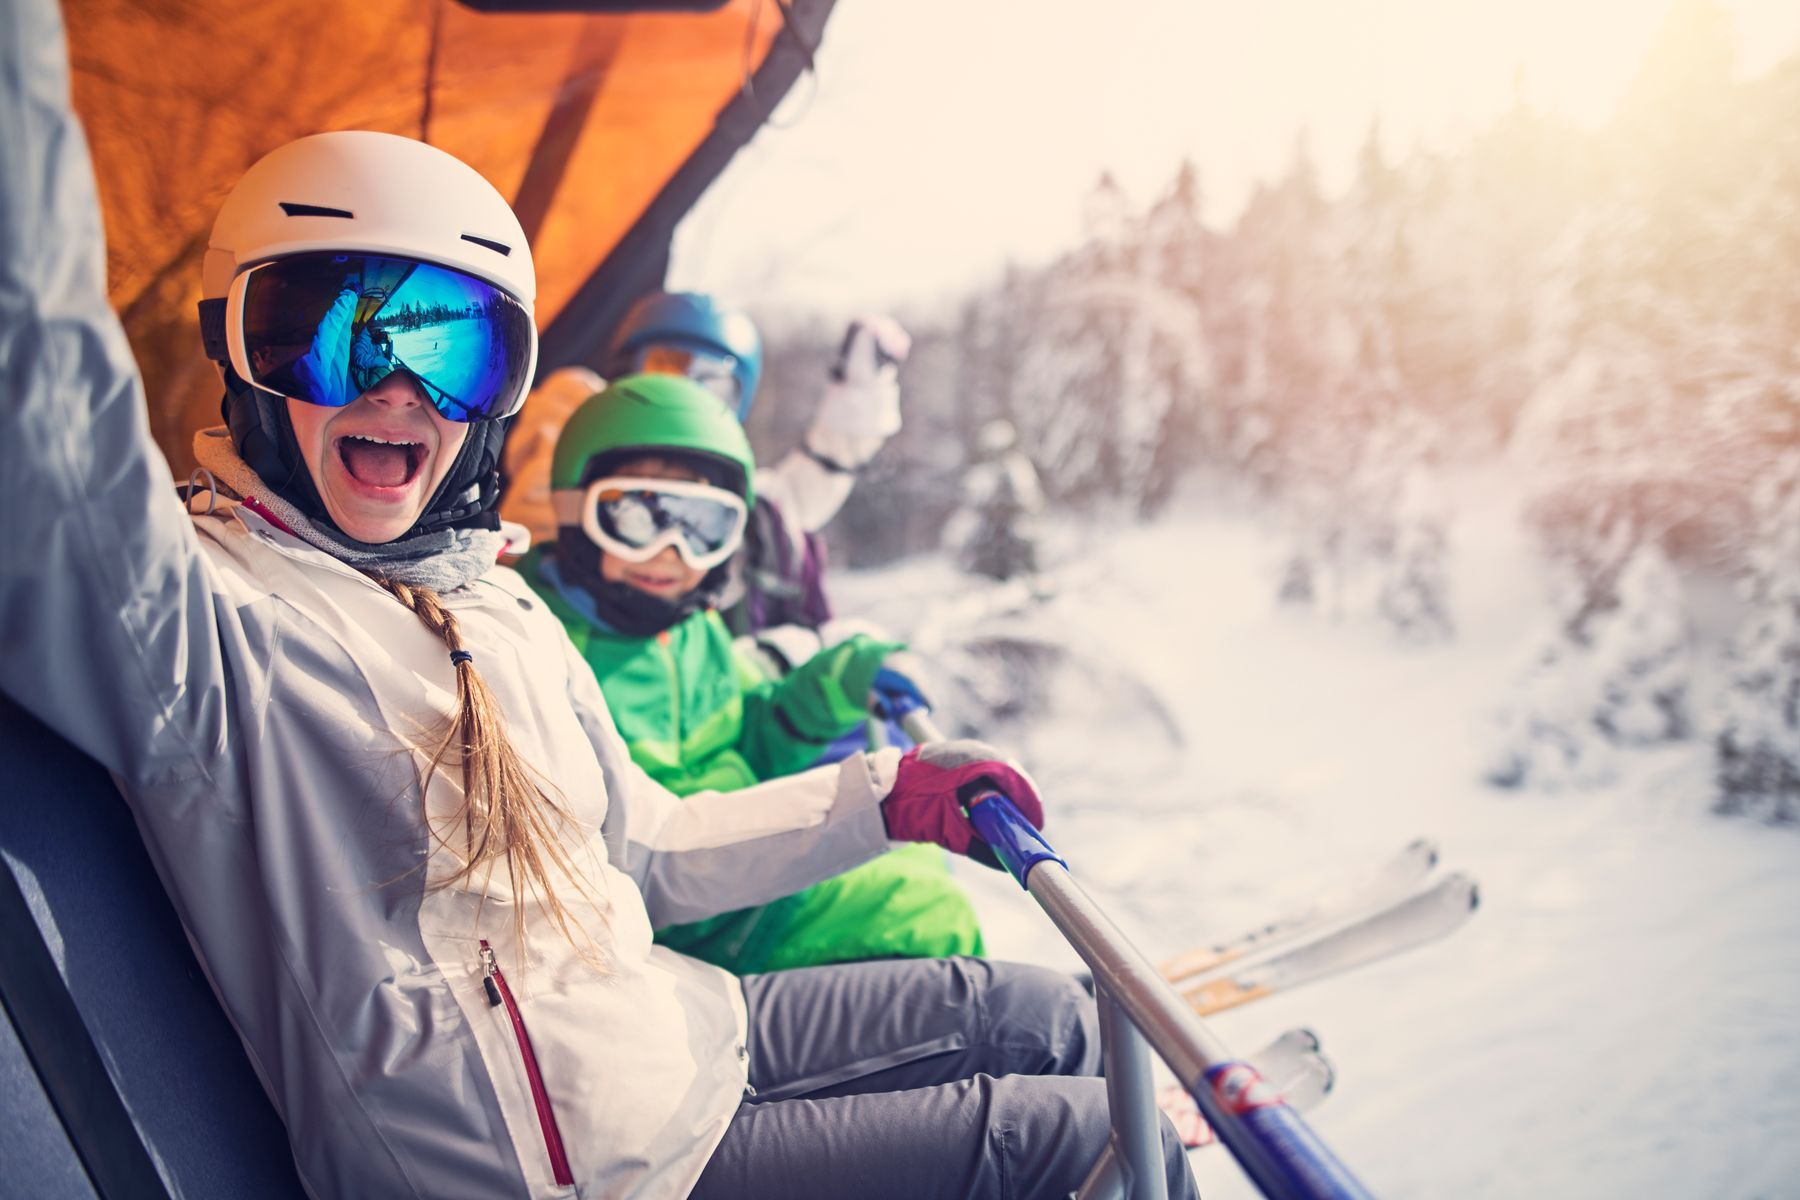 A family sitting on a ski lift and cheering at the camera, while the sun sets over an Alpine landscape